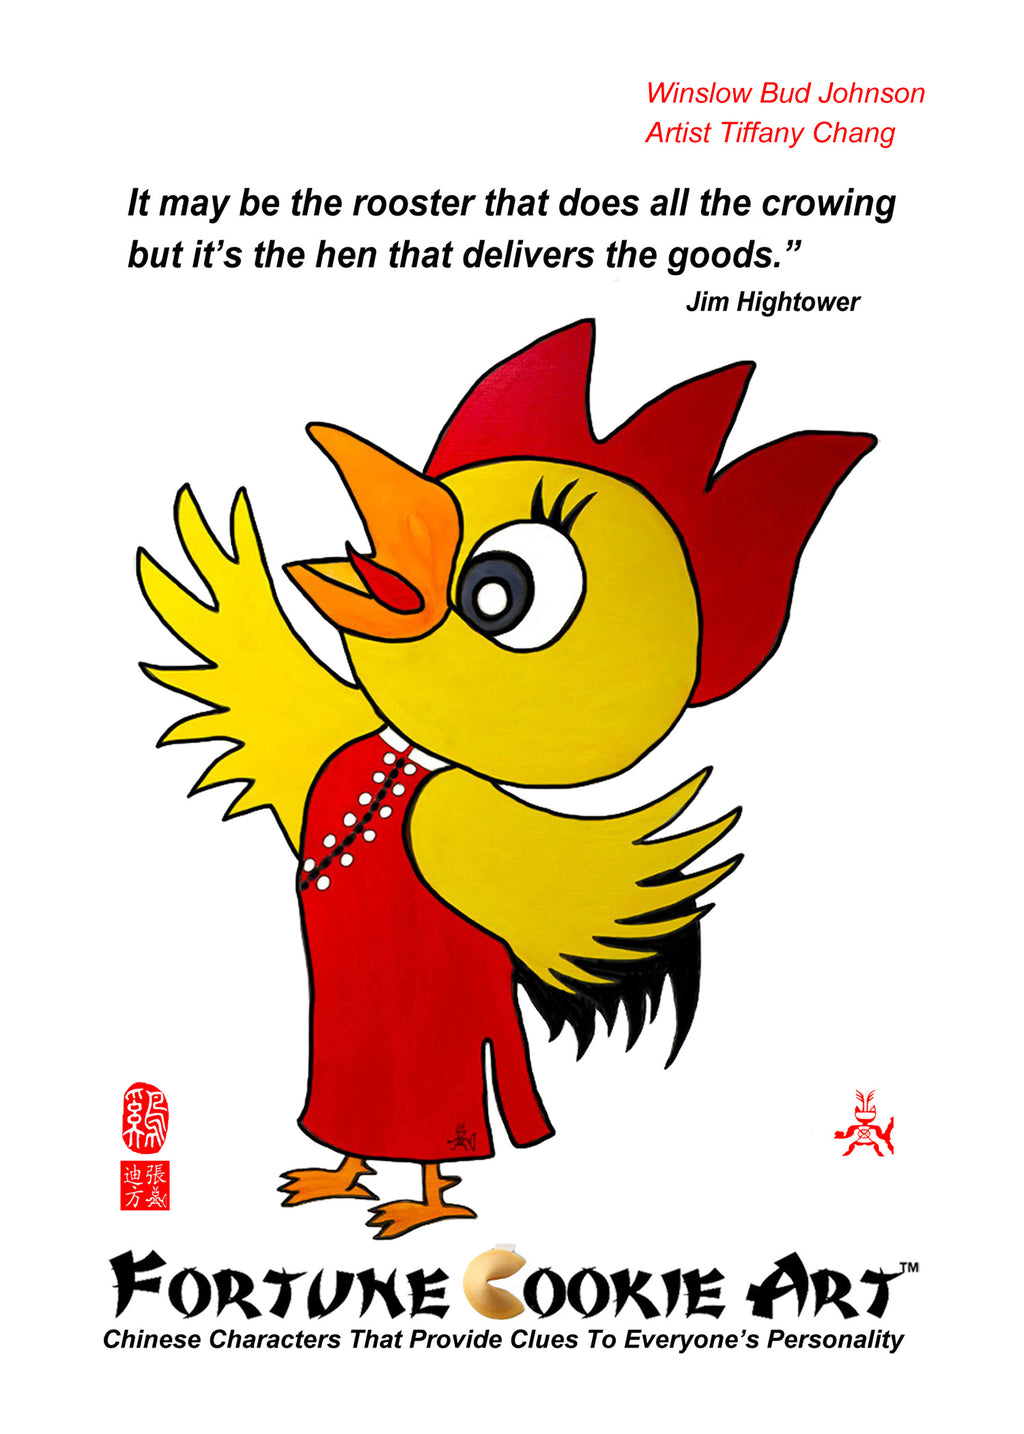 Fortune Cookie Art - The Confident Rooster